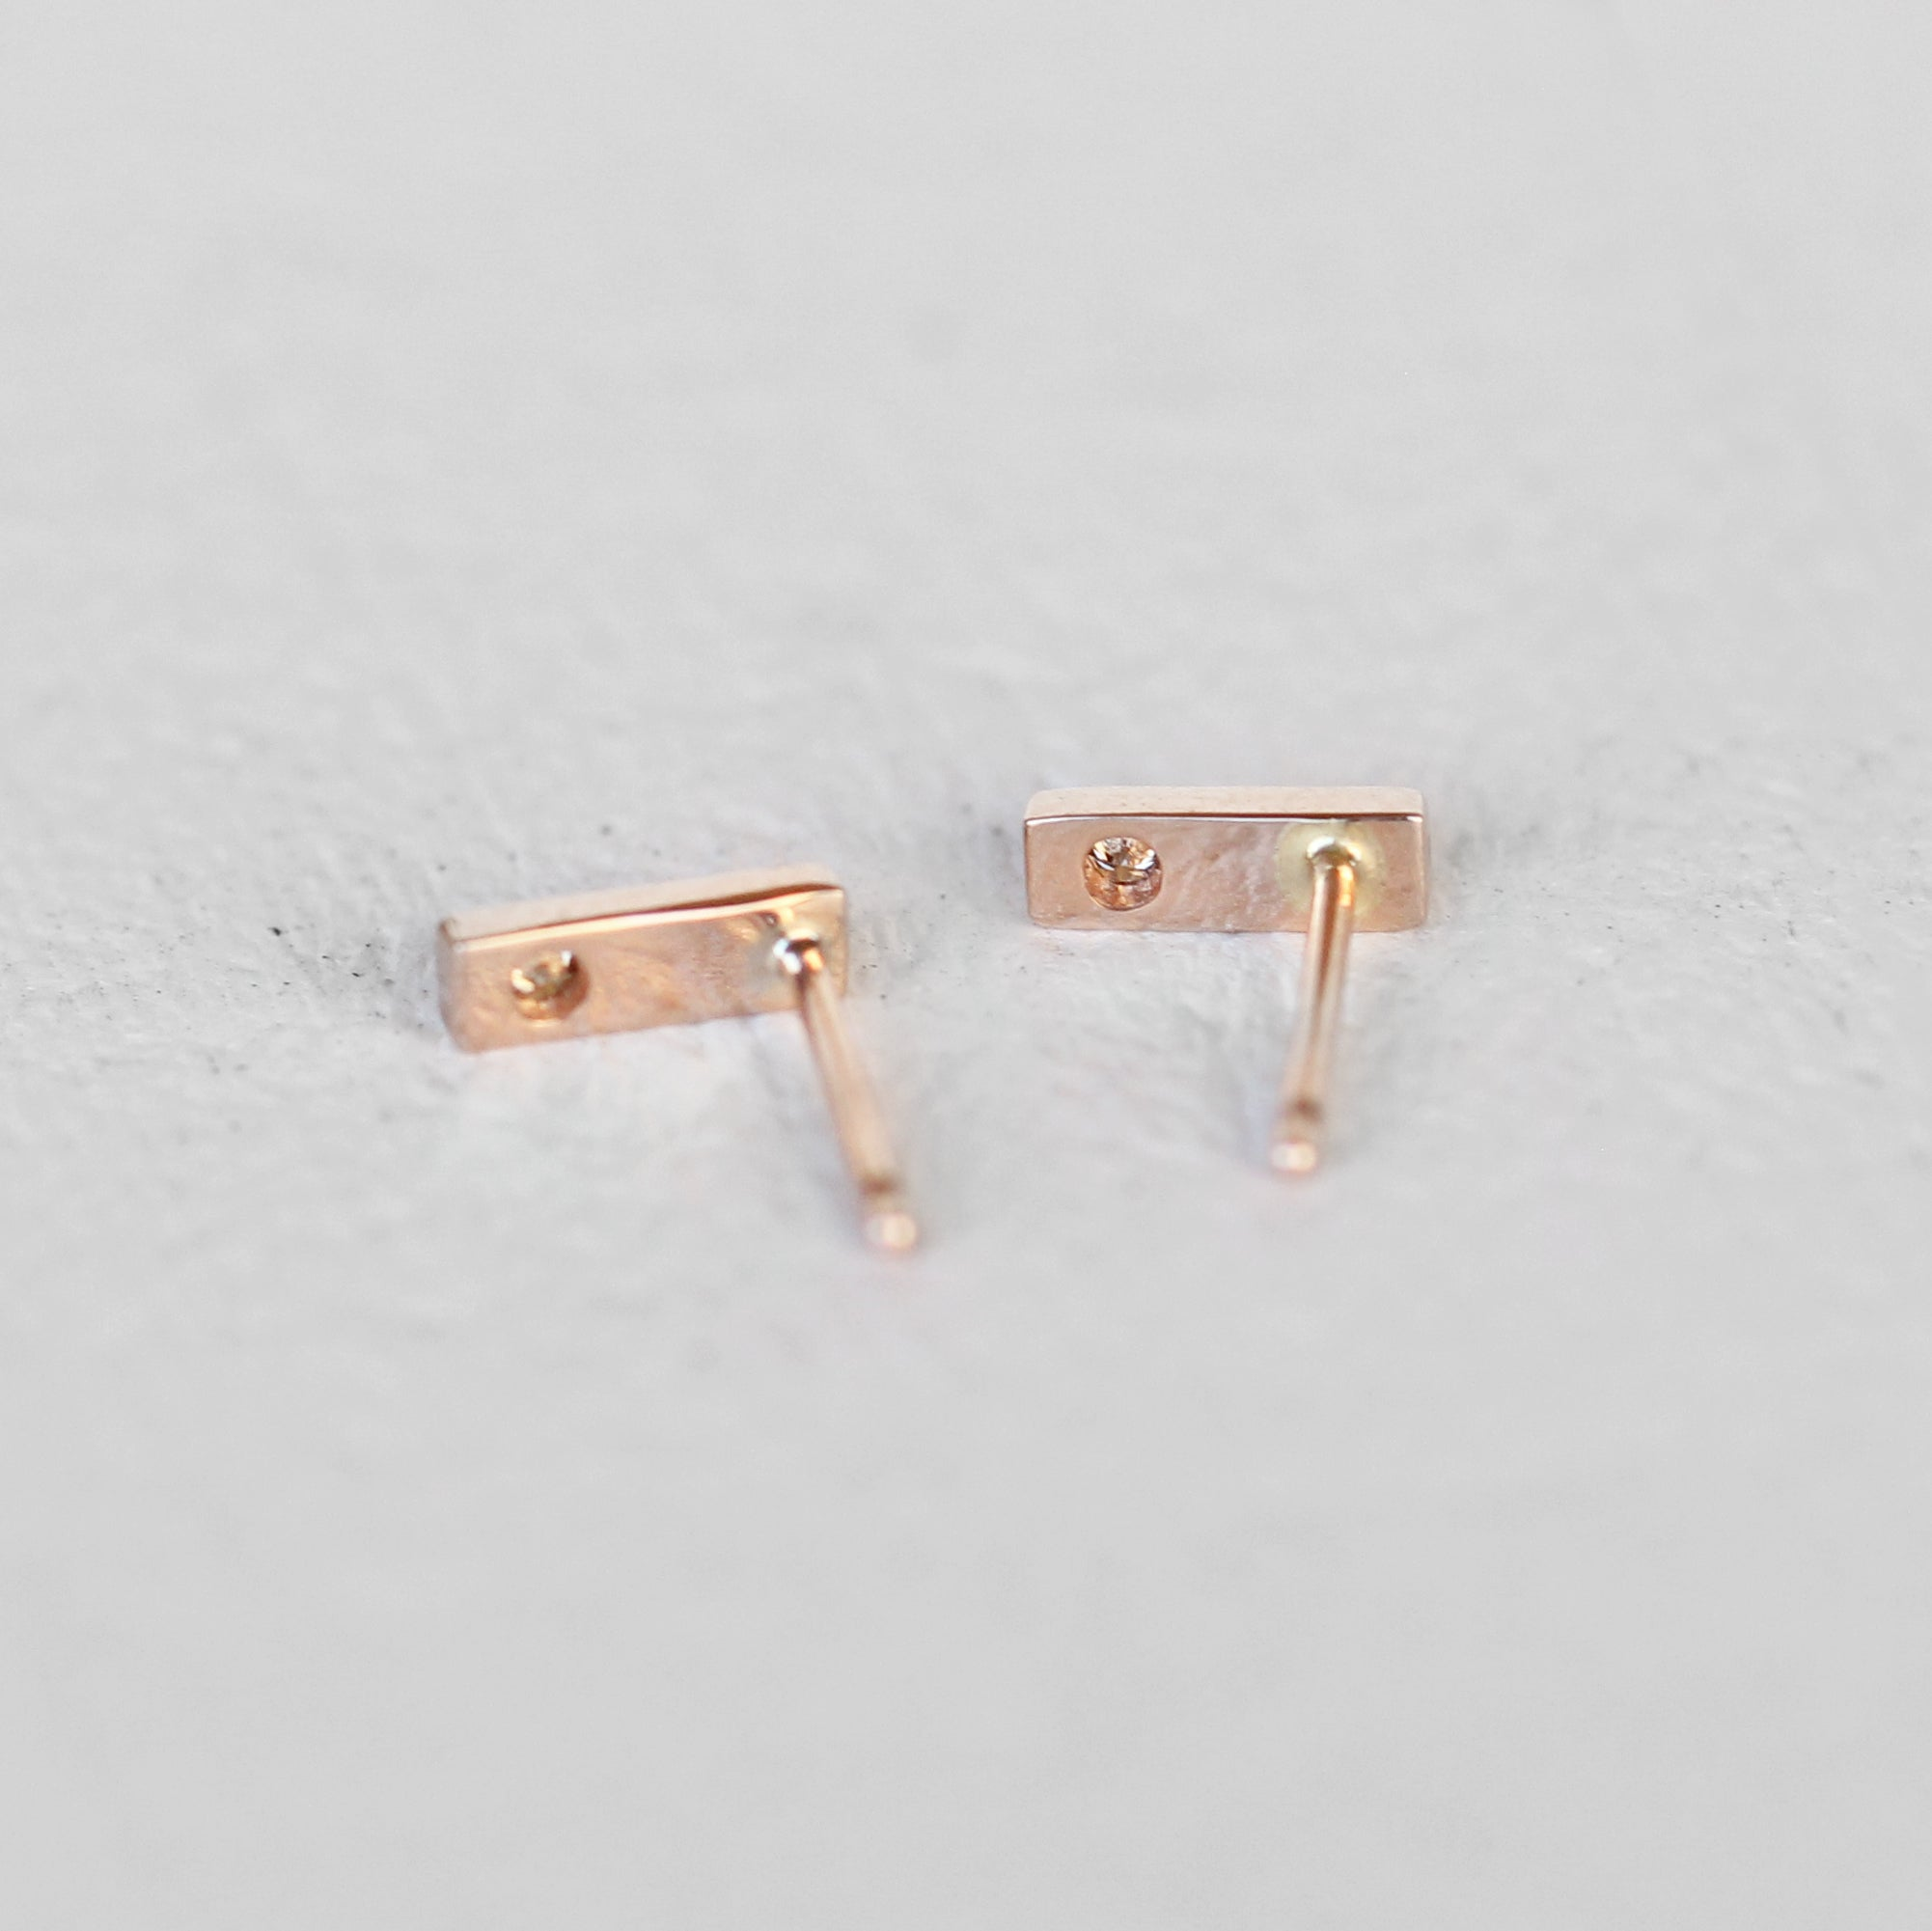 Chantell Earrings - Diamond and 14k Gold Bar Earrings- Ready to Ship - Salt & Pepper Celestial Diamond Engagement Rings and Wedding Bands  by Midwinter Co.